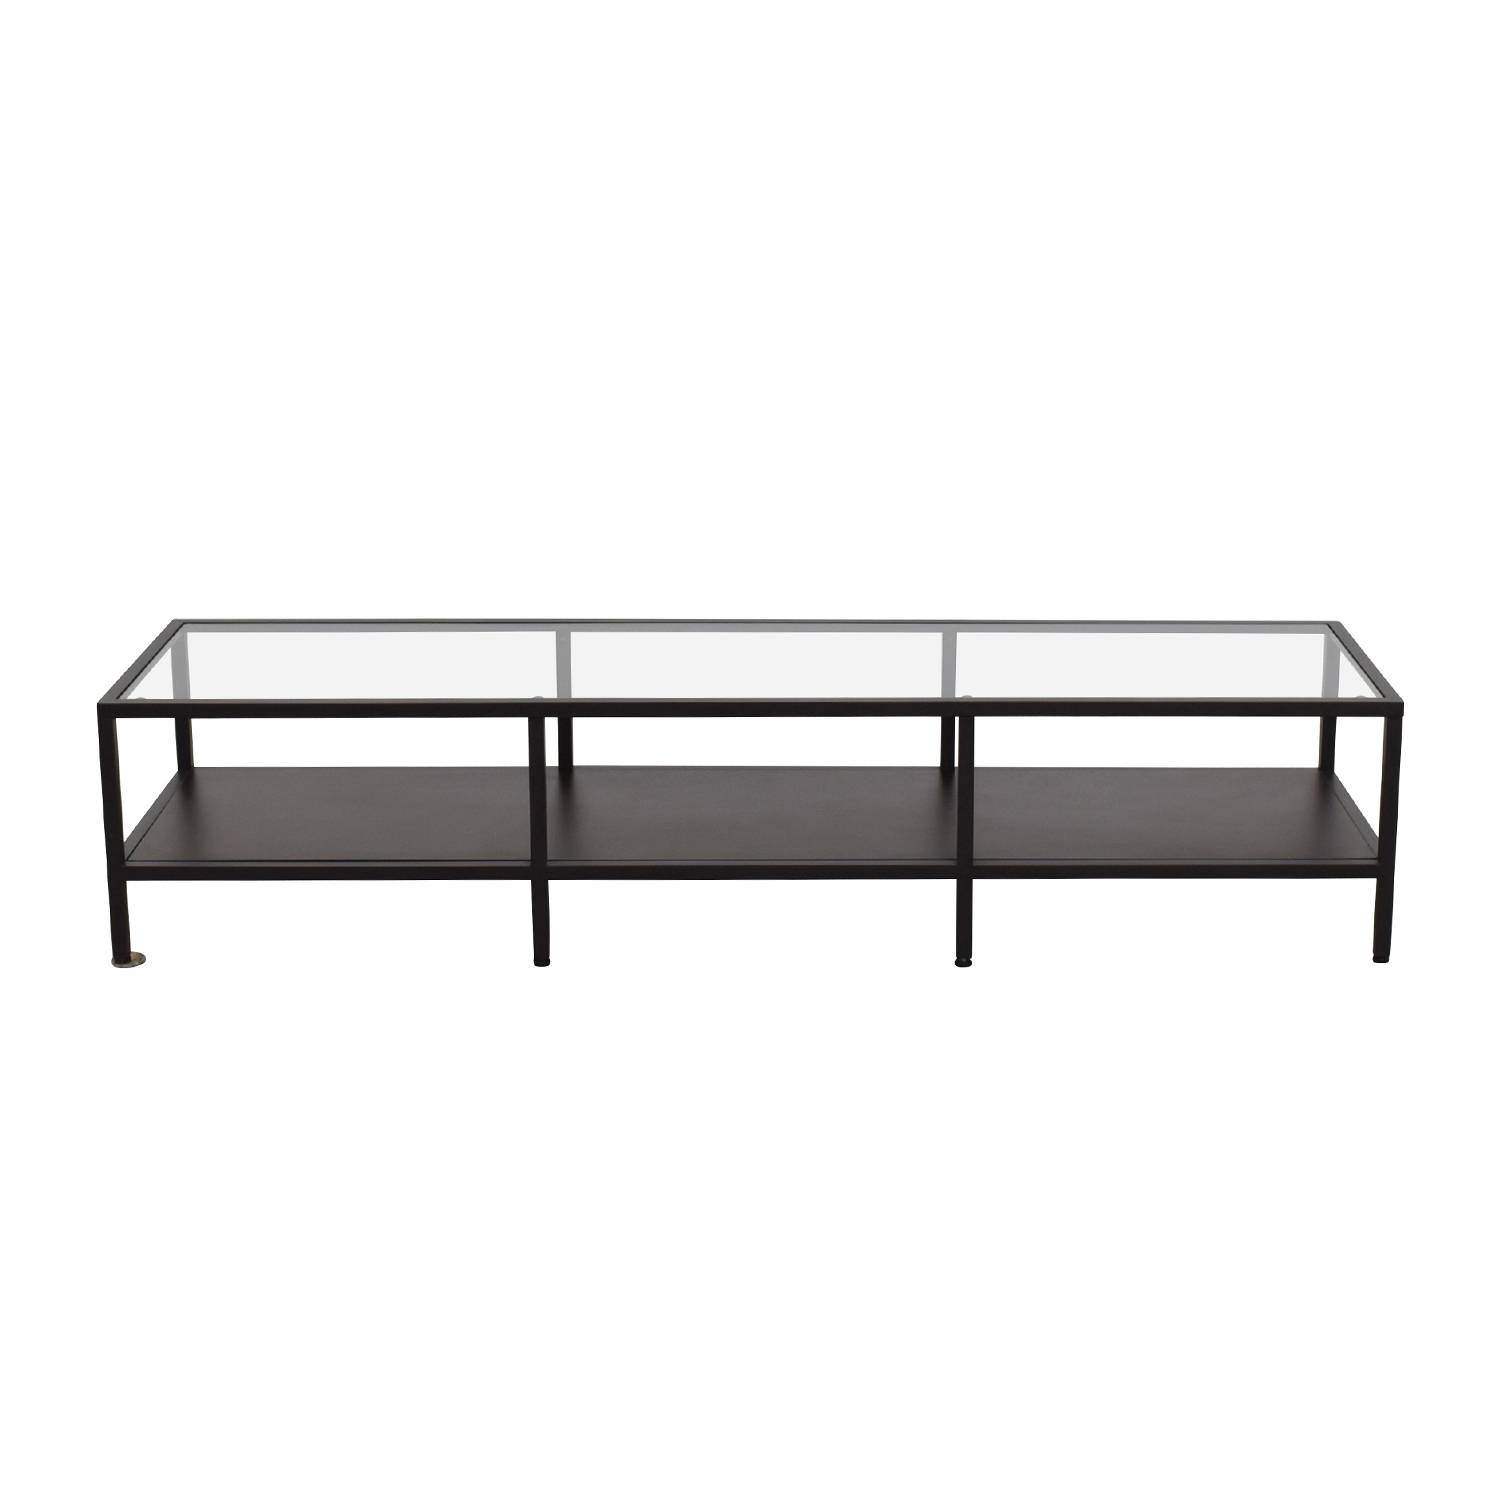 30% Off - Ikea Ikea Metal Glass Coffee Table Media Unit / Tables within Metal Glass Coffee Tables (Image 1 of 30)